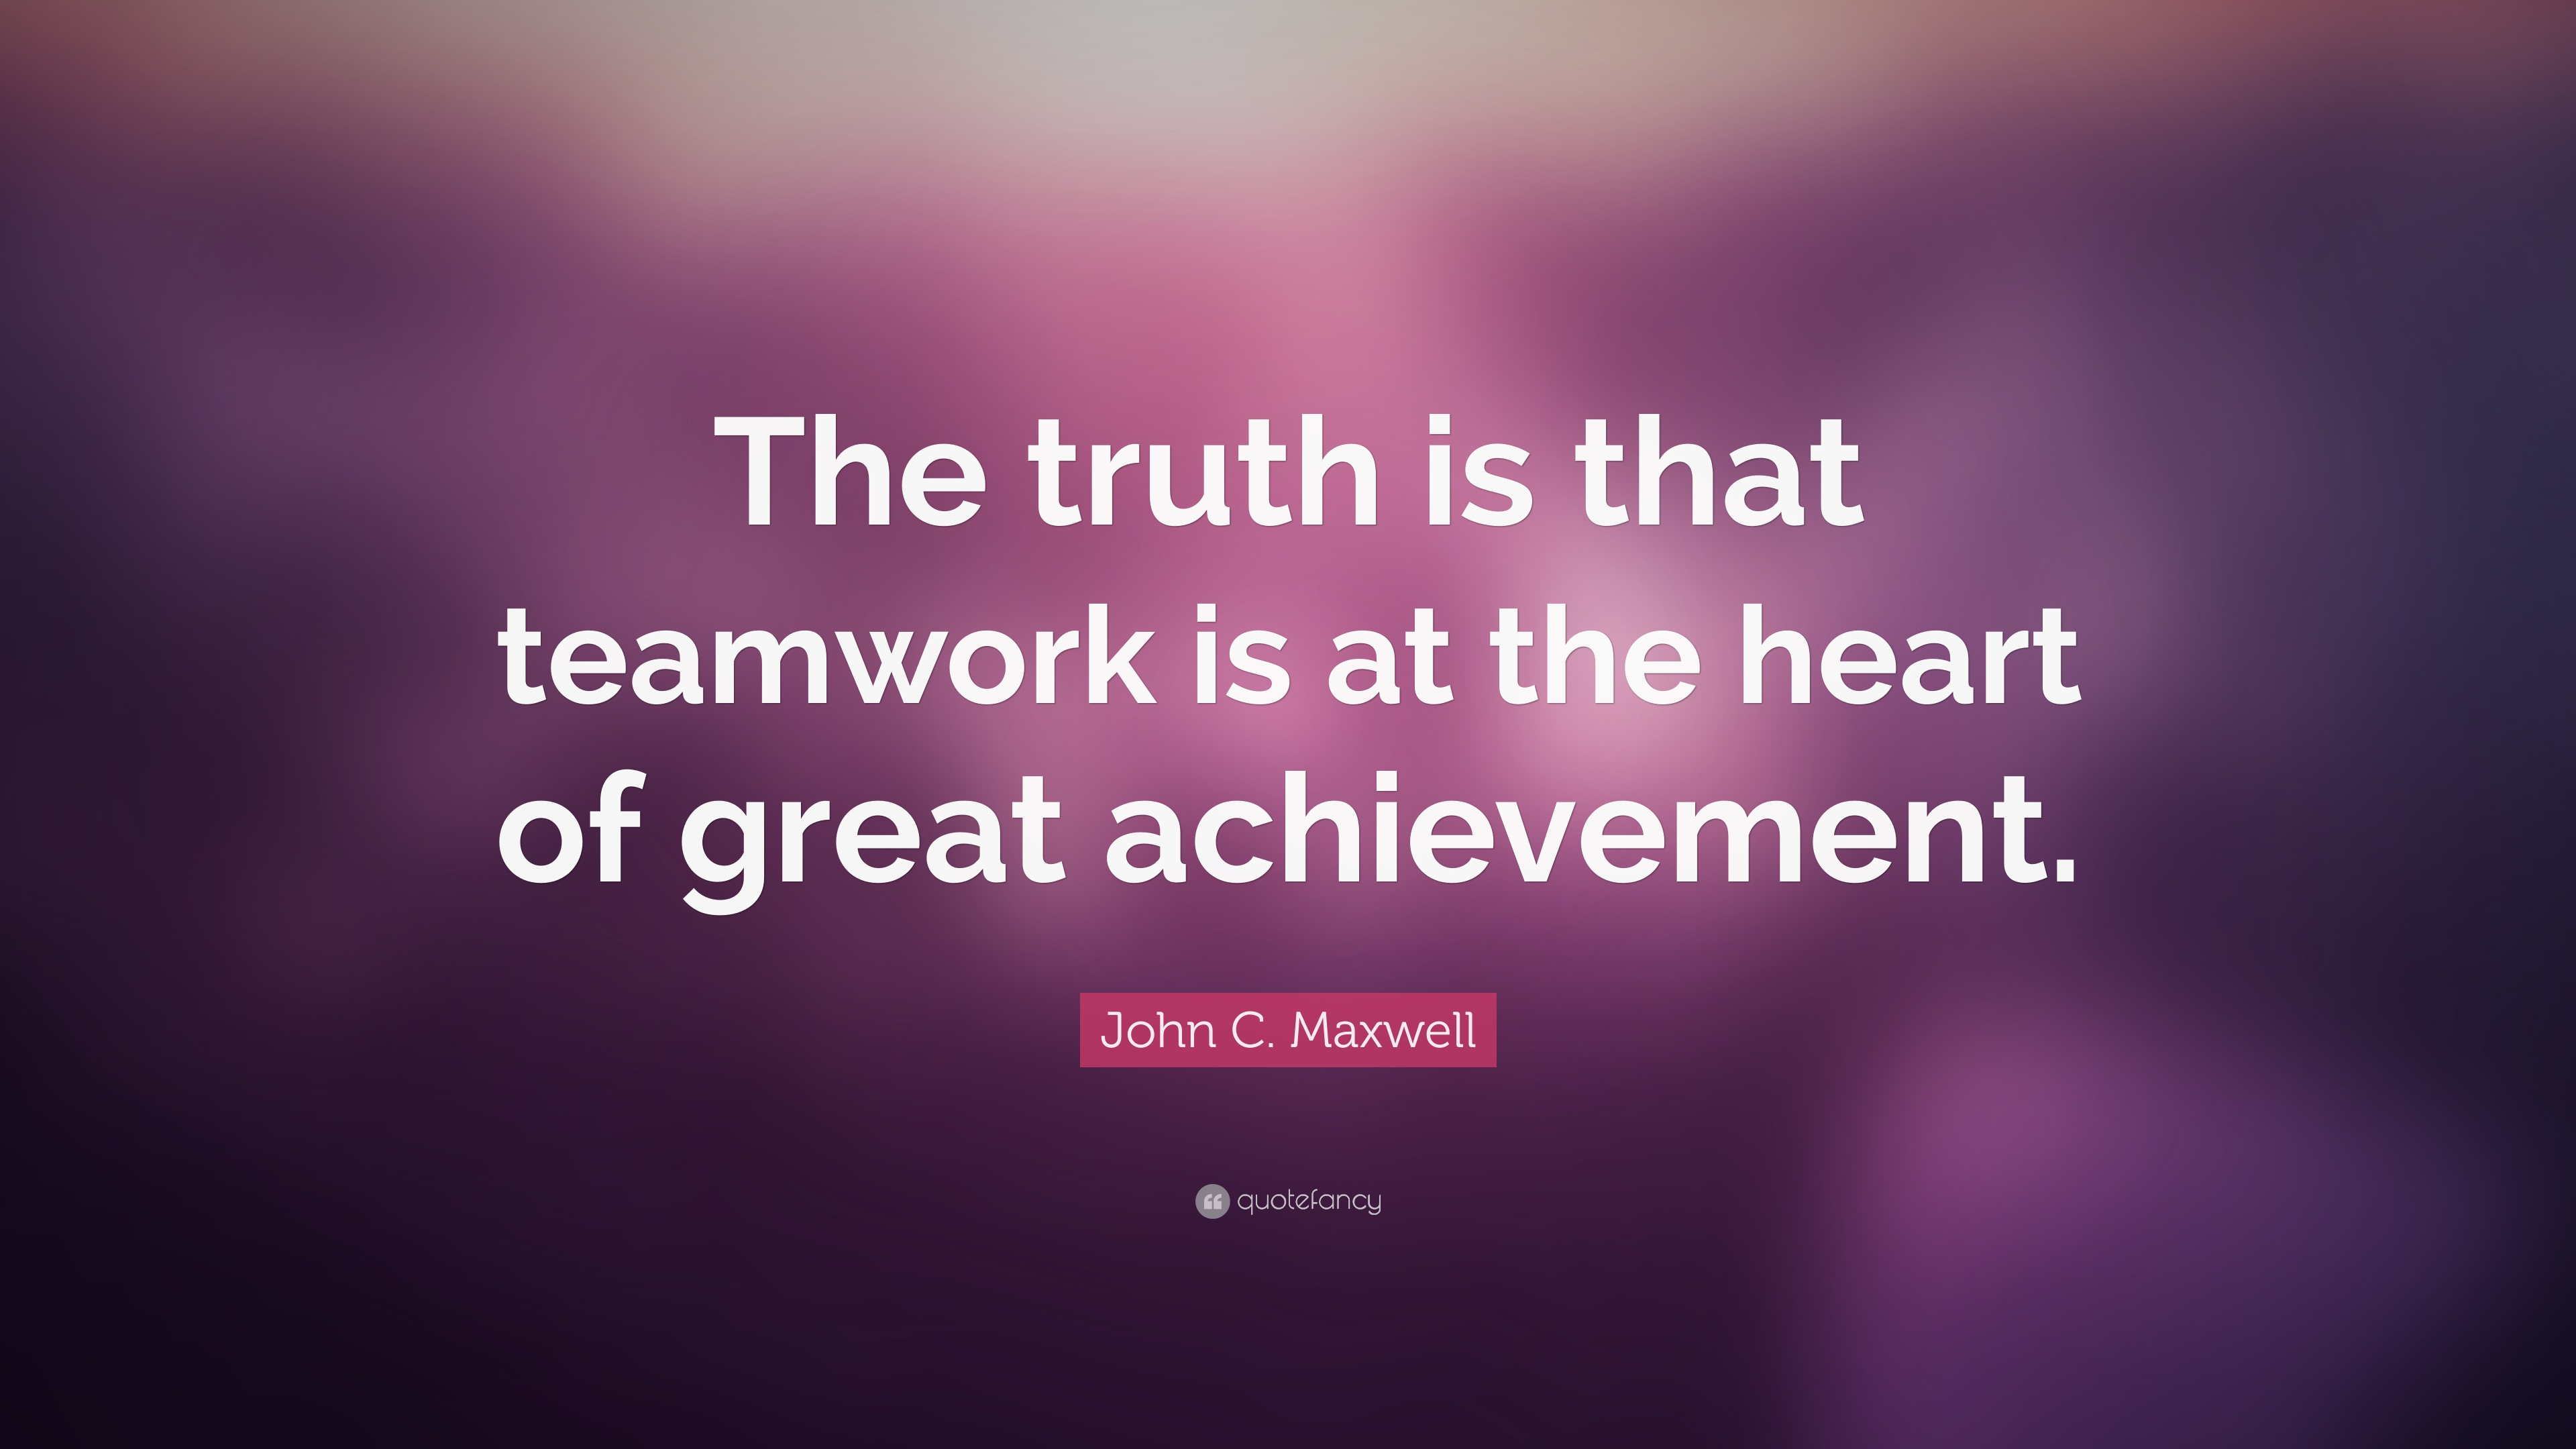 Teamwork Quotes Beauteous Teamwork Quotes 40 Wallpapers  Quotefancy